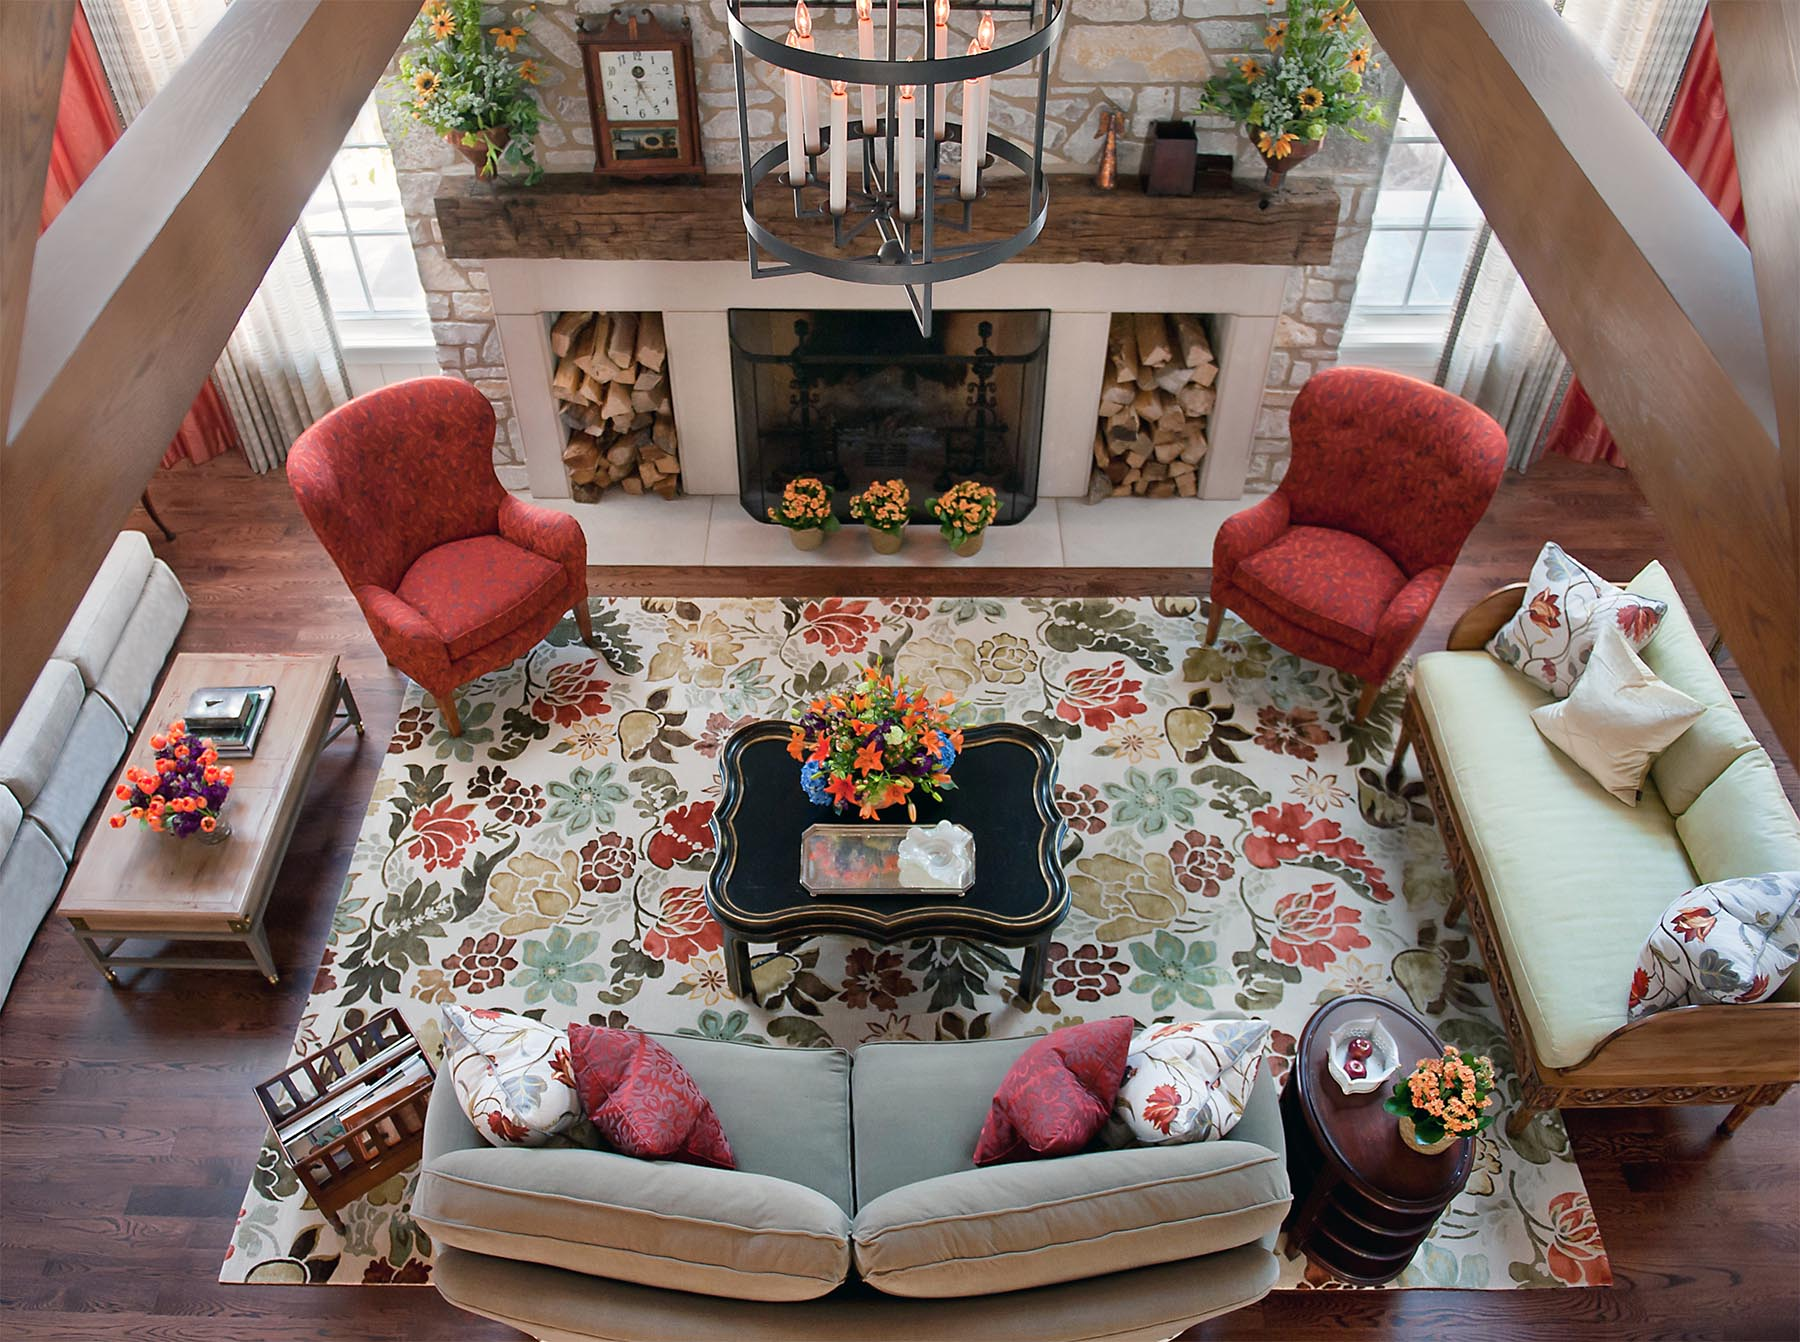 Magnificent aerial view of a cheerful lodge style living room with coral chairs and vibrant floral rug. Come see more interior design inspiration from Elizabeth Drake. Photo by Werner Straube. #interiordesign #classicdesign #traditionaldecor #housetour #elizabethdrake